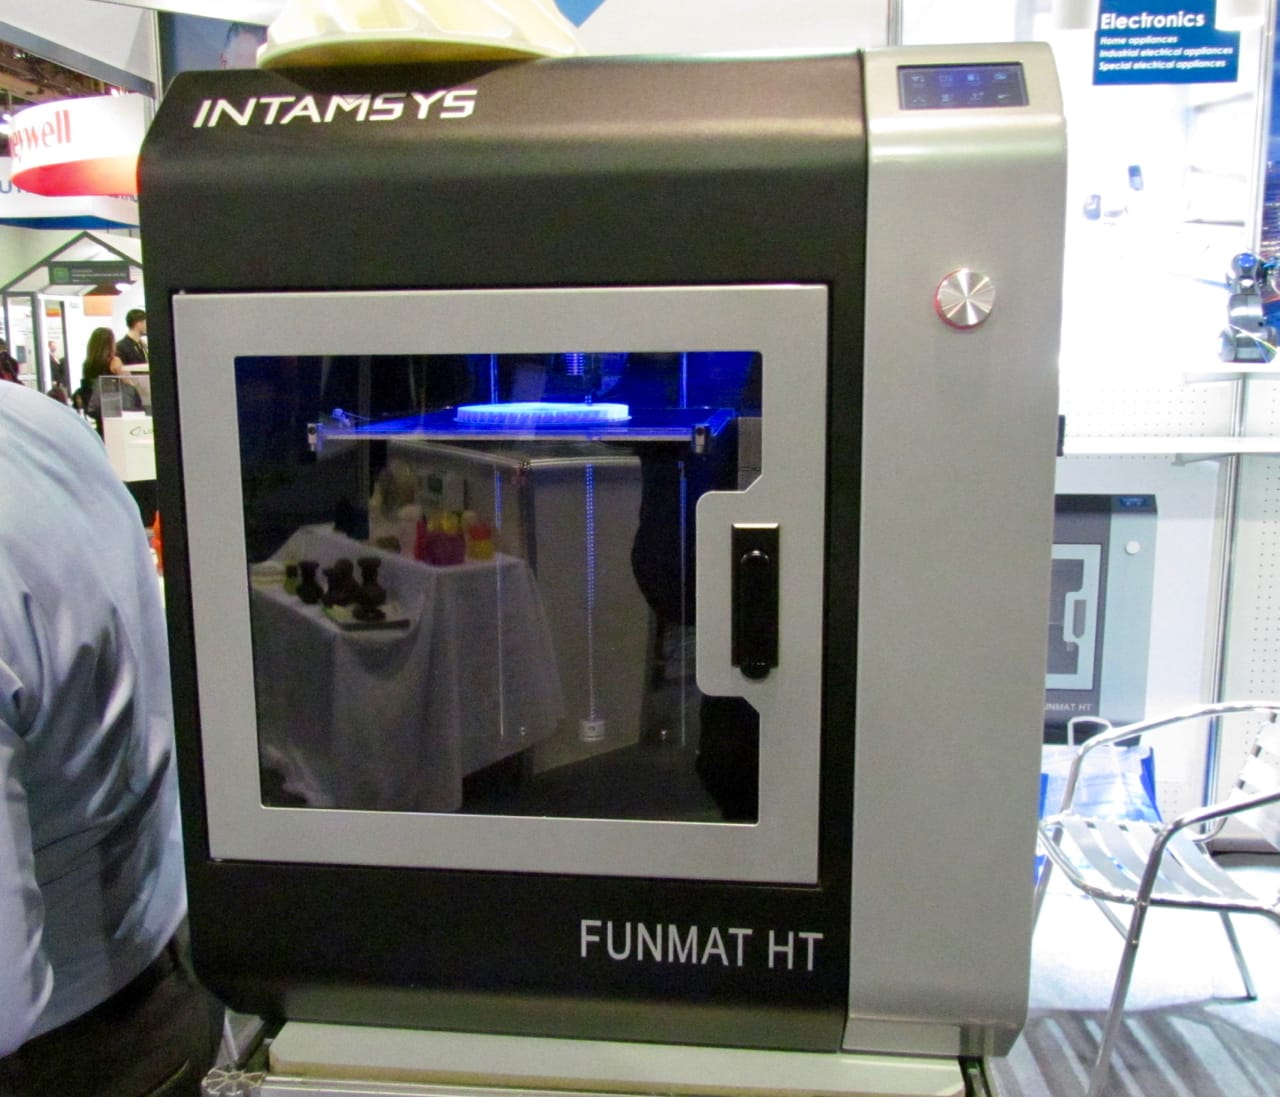 The INTAMSYS FUNMAT HT Professional 3D Printer